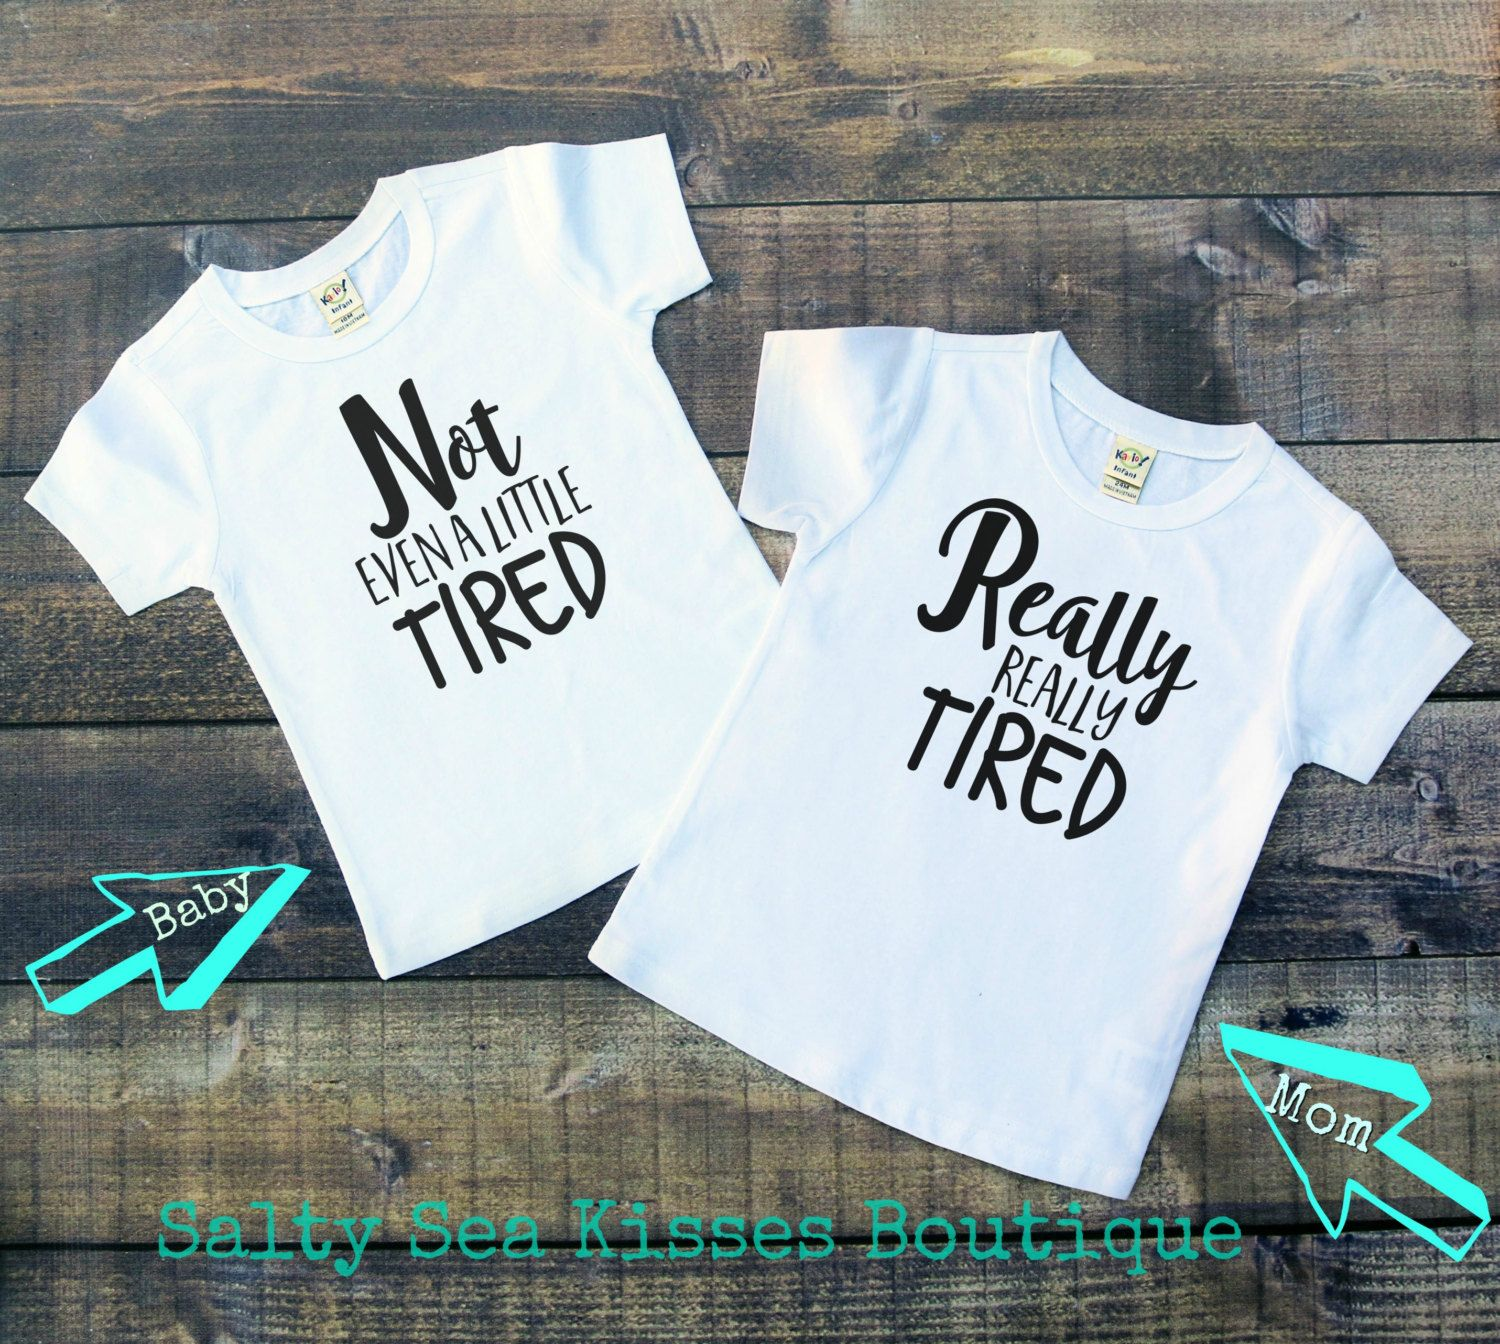 50b0d6c043db5 Really Really Tired- Not Even A Little Tired- Mommy and Me Shirt Set-  Women s Shirt- Kid Shirt- Baby Shirt- Toddler Shirt- Mom Shirt by  SaltySeaKisses on ...